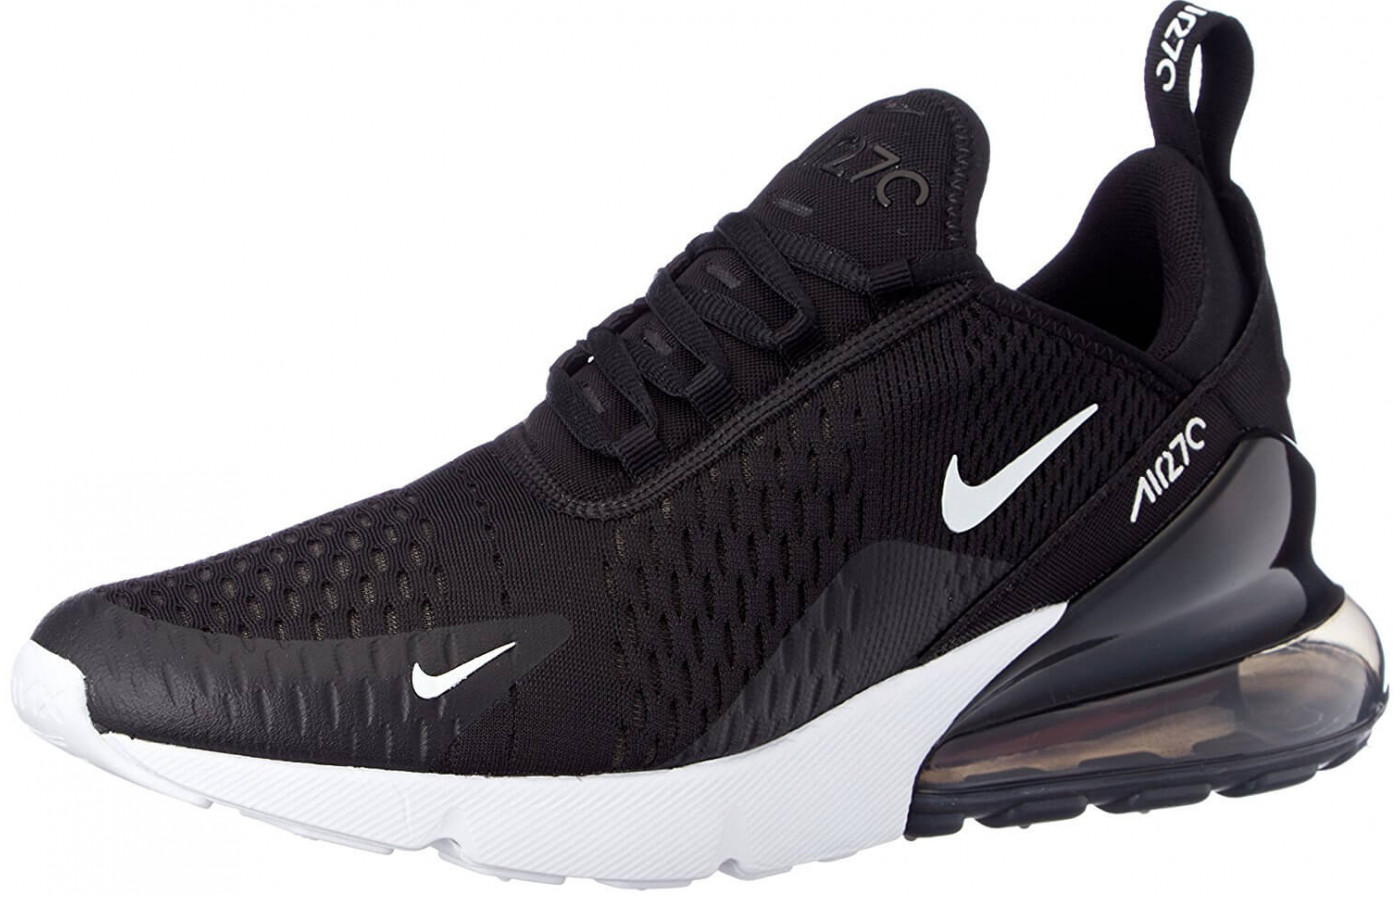 42d57e0cae Nike Air Max 270. Mesh upper and 270 degrees of Air ...